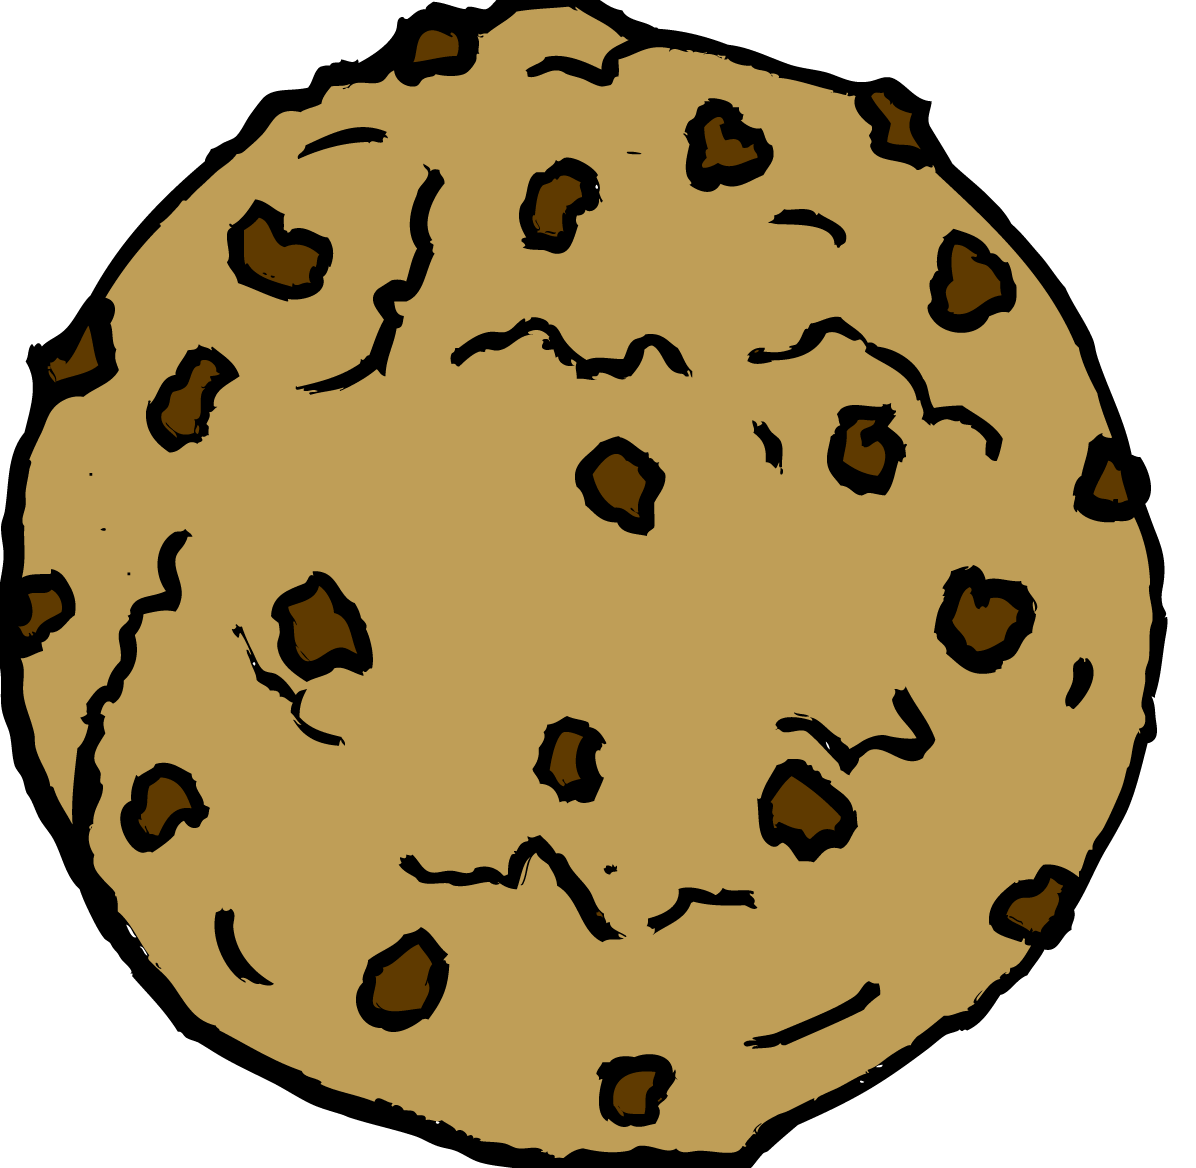 Chocolate Chip Cookie Clipart #15858-Chocolate Chip Cookie Clipart #15858-5